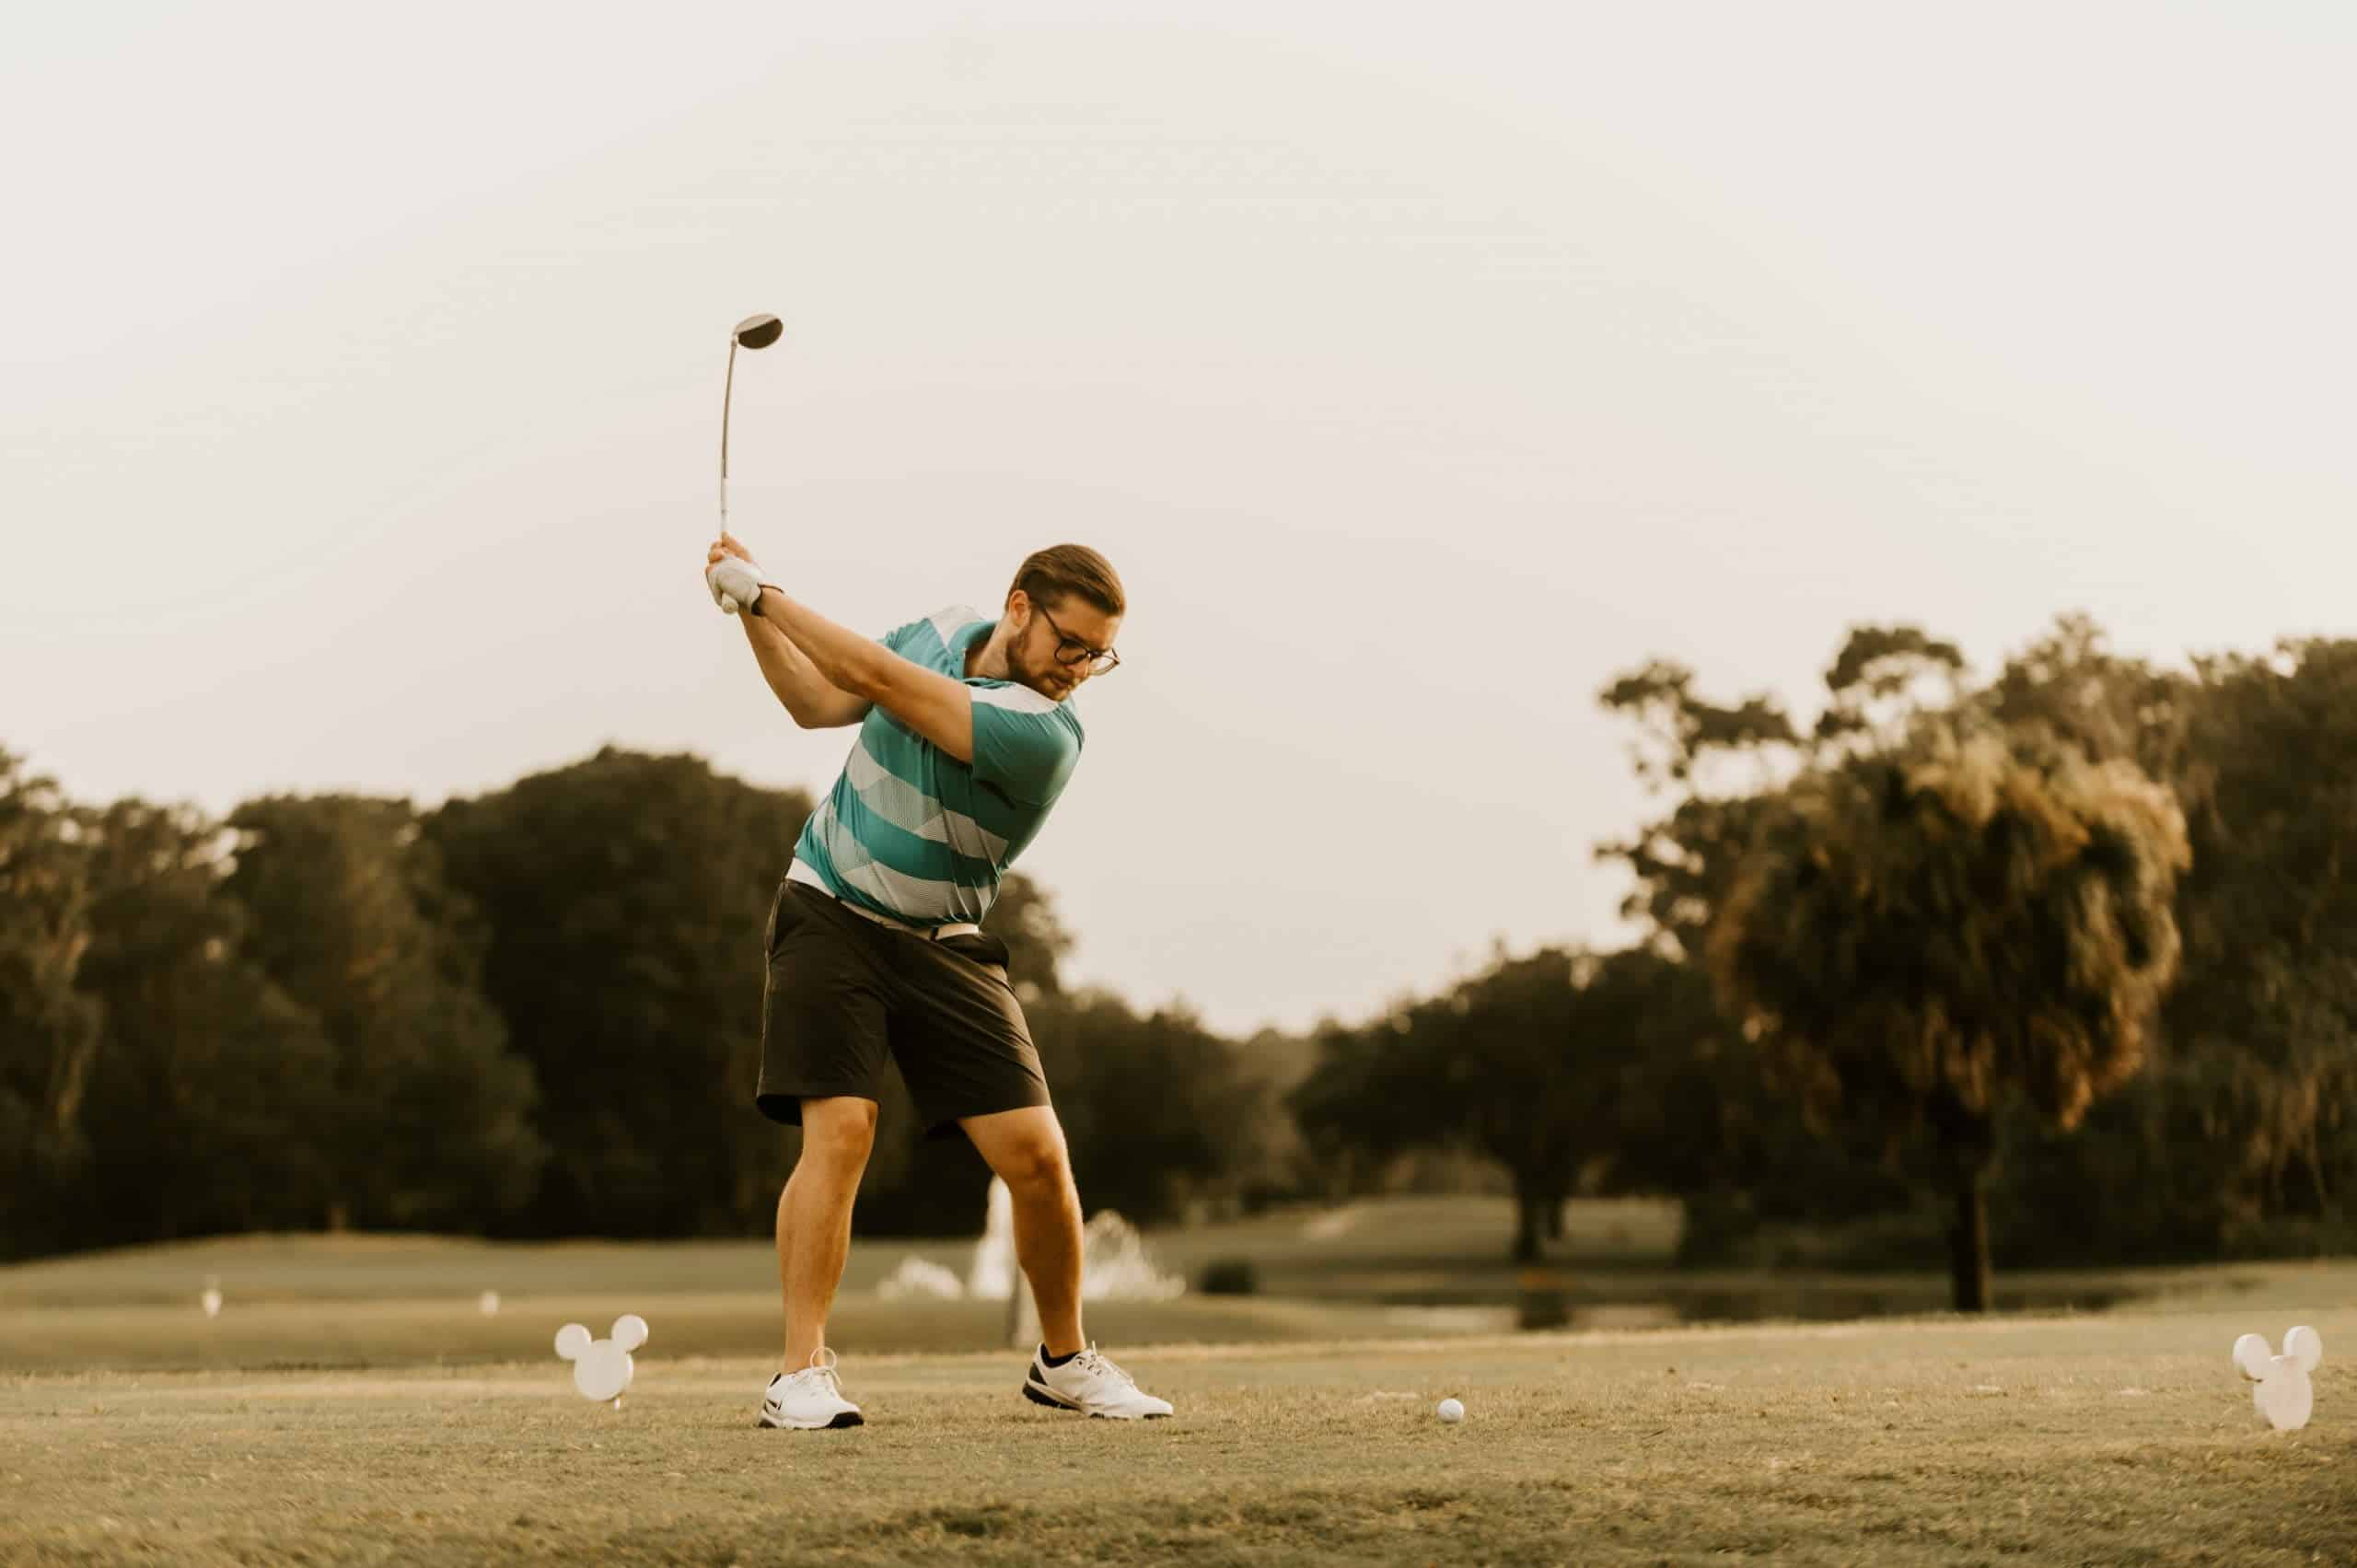 best golf clubs for beginners uk